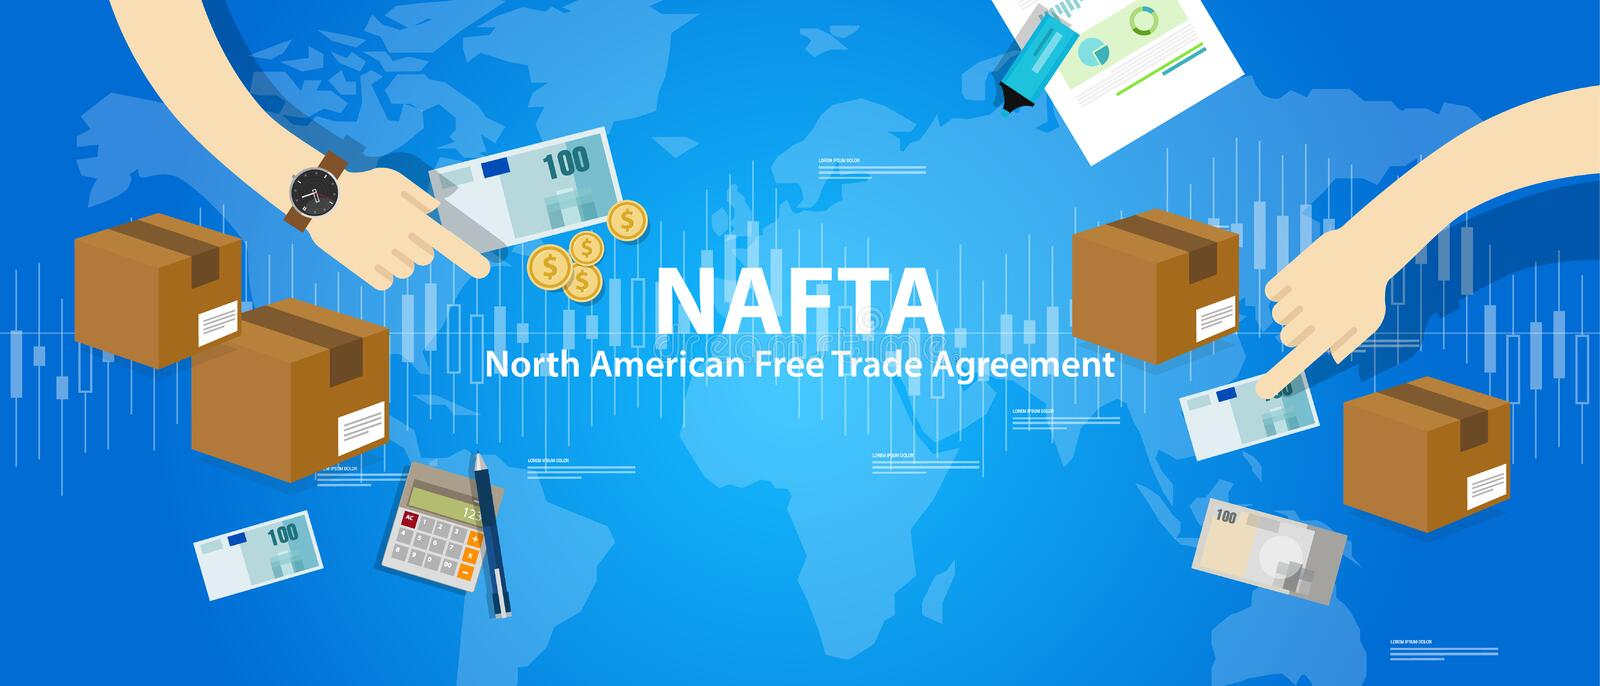 NAFTA North American Free Trade Agreement vector illustration